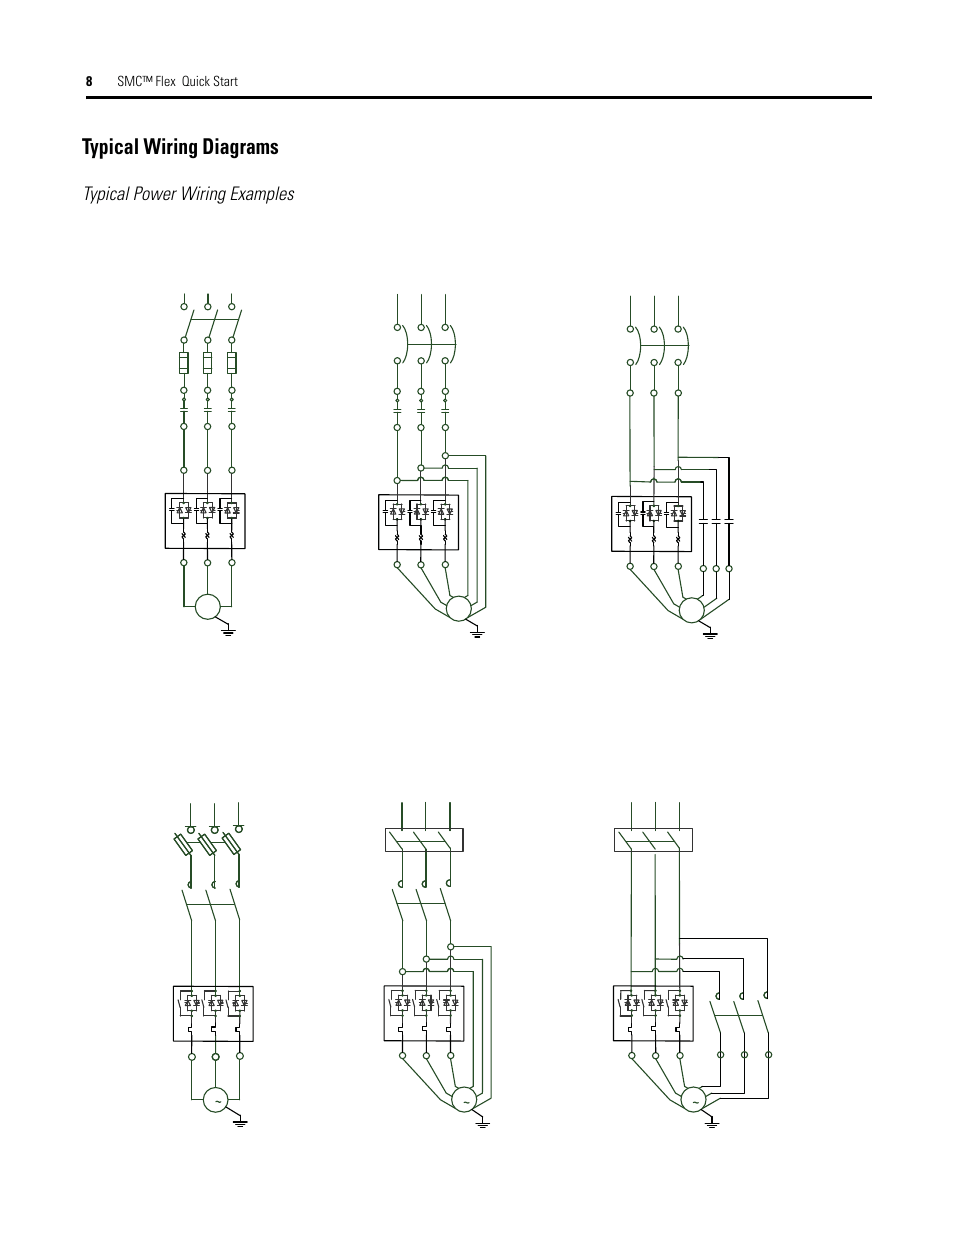 hight resolution of typical wiring diagrams typical power wiring examples 8smc flex quick start diagrams